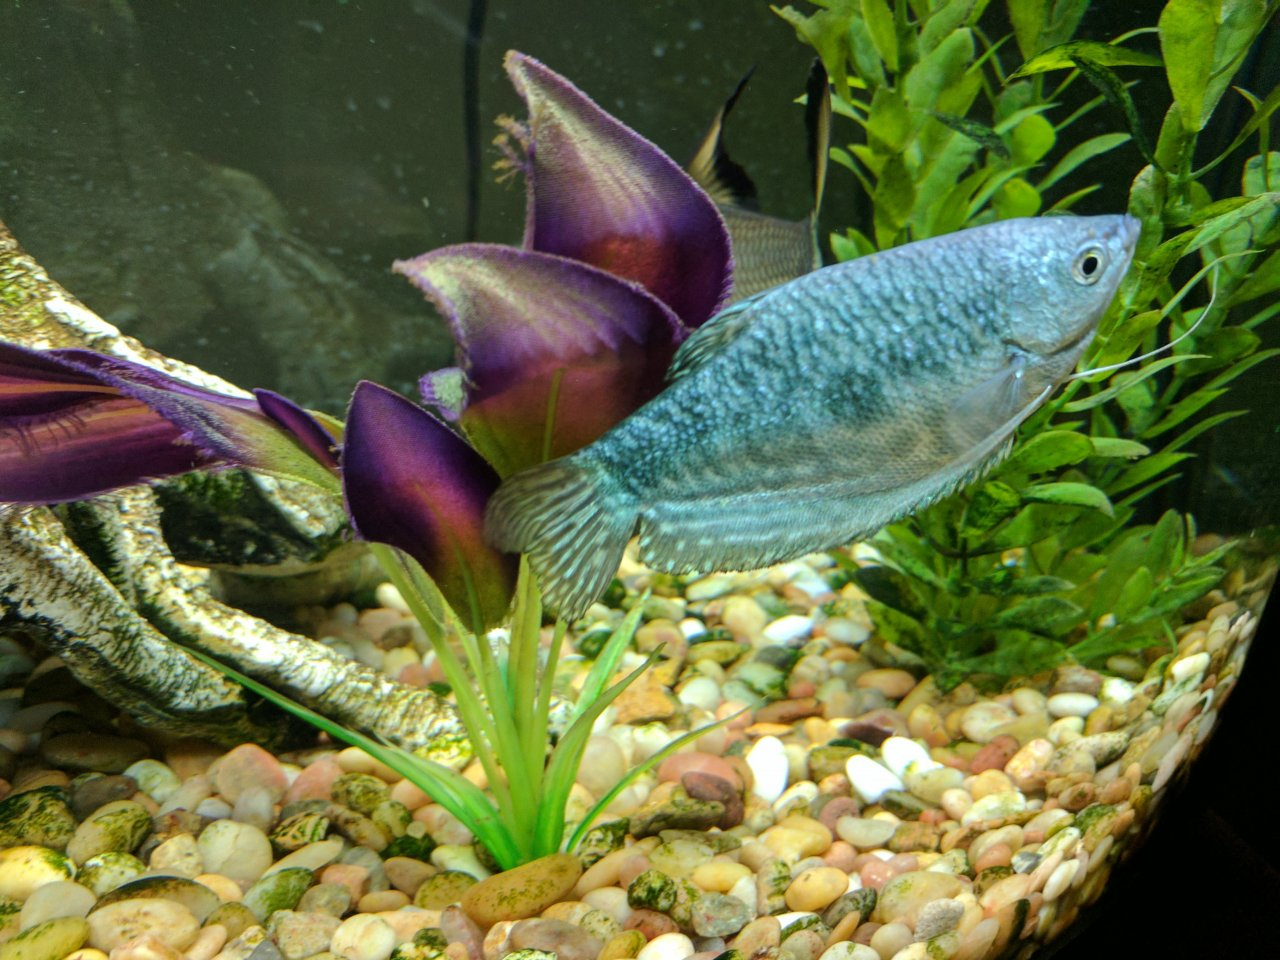 Gourami Scales Changing Colour? | My Aquarium Club